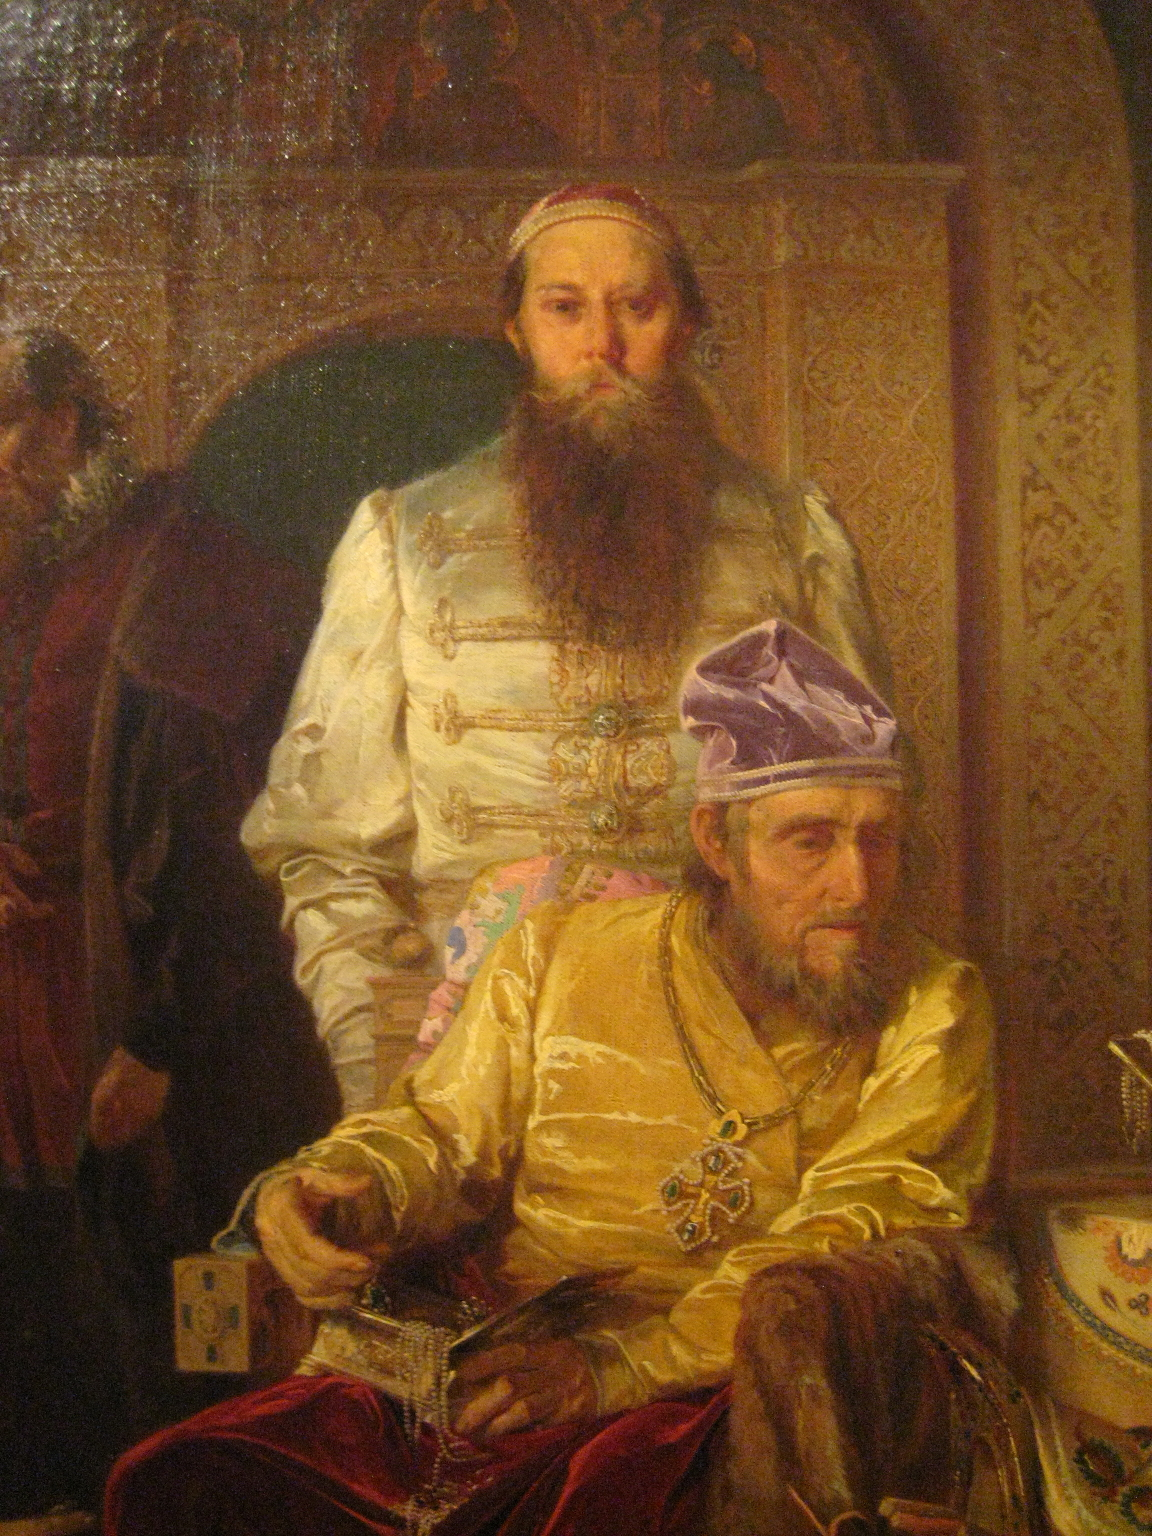 a life history of ivan the terrible from russia This book is very handy to know about ivan iv also known as ivan the terrible ivan's grand father managed to free russia from the mongol horde.